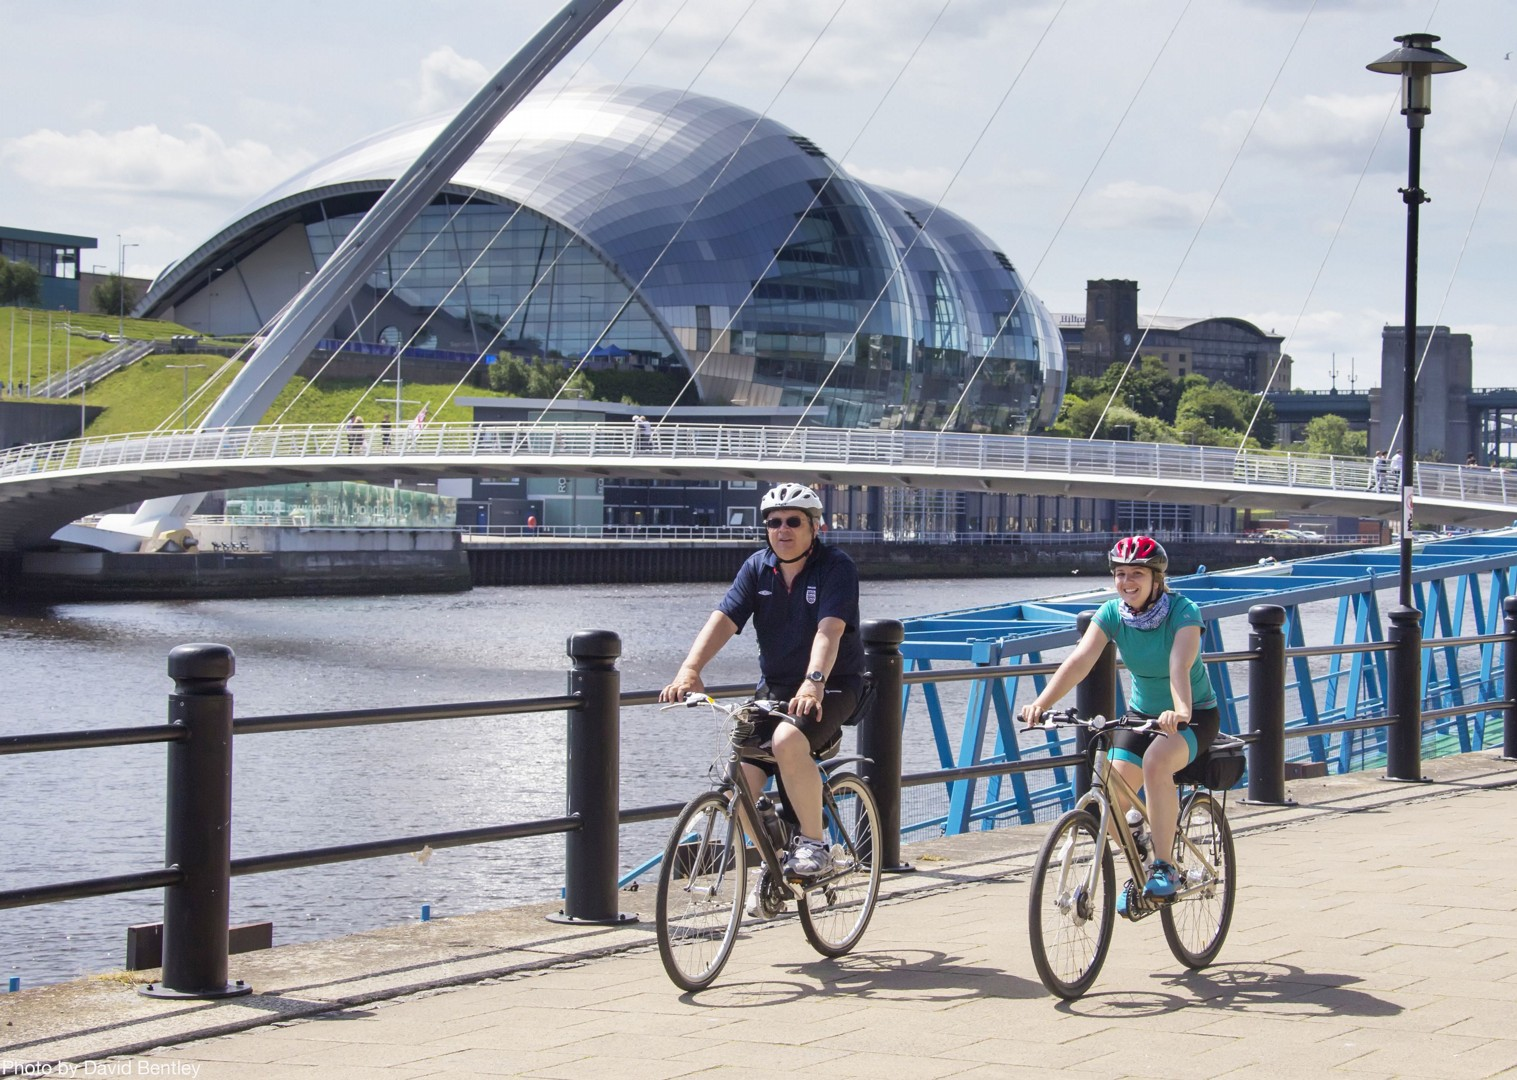 newcastle-millenium-bridge-supported-family-cycling.jpg - UK - Hadrian's Cycleway 4 Day - Supported Family Cycling Holiday - Family Cycling